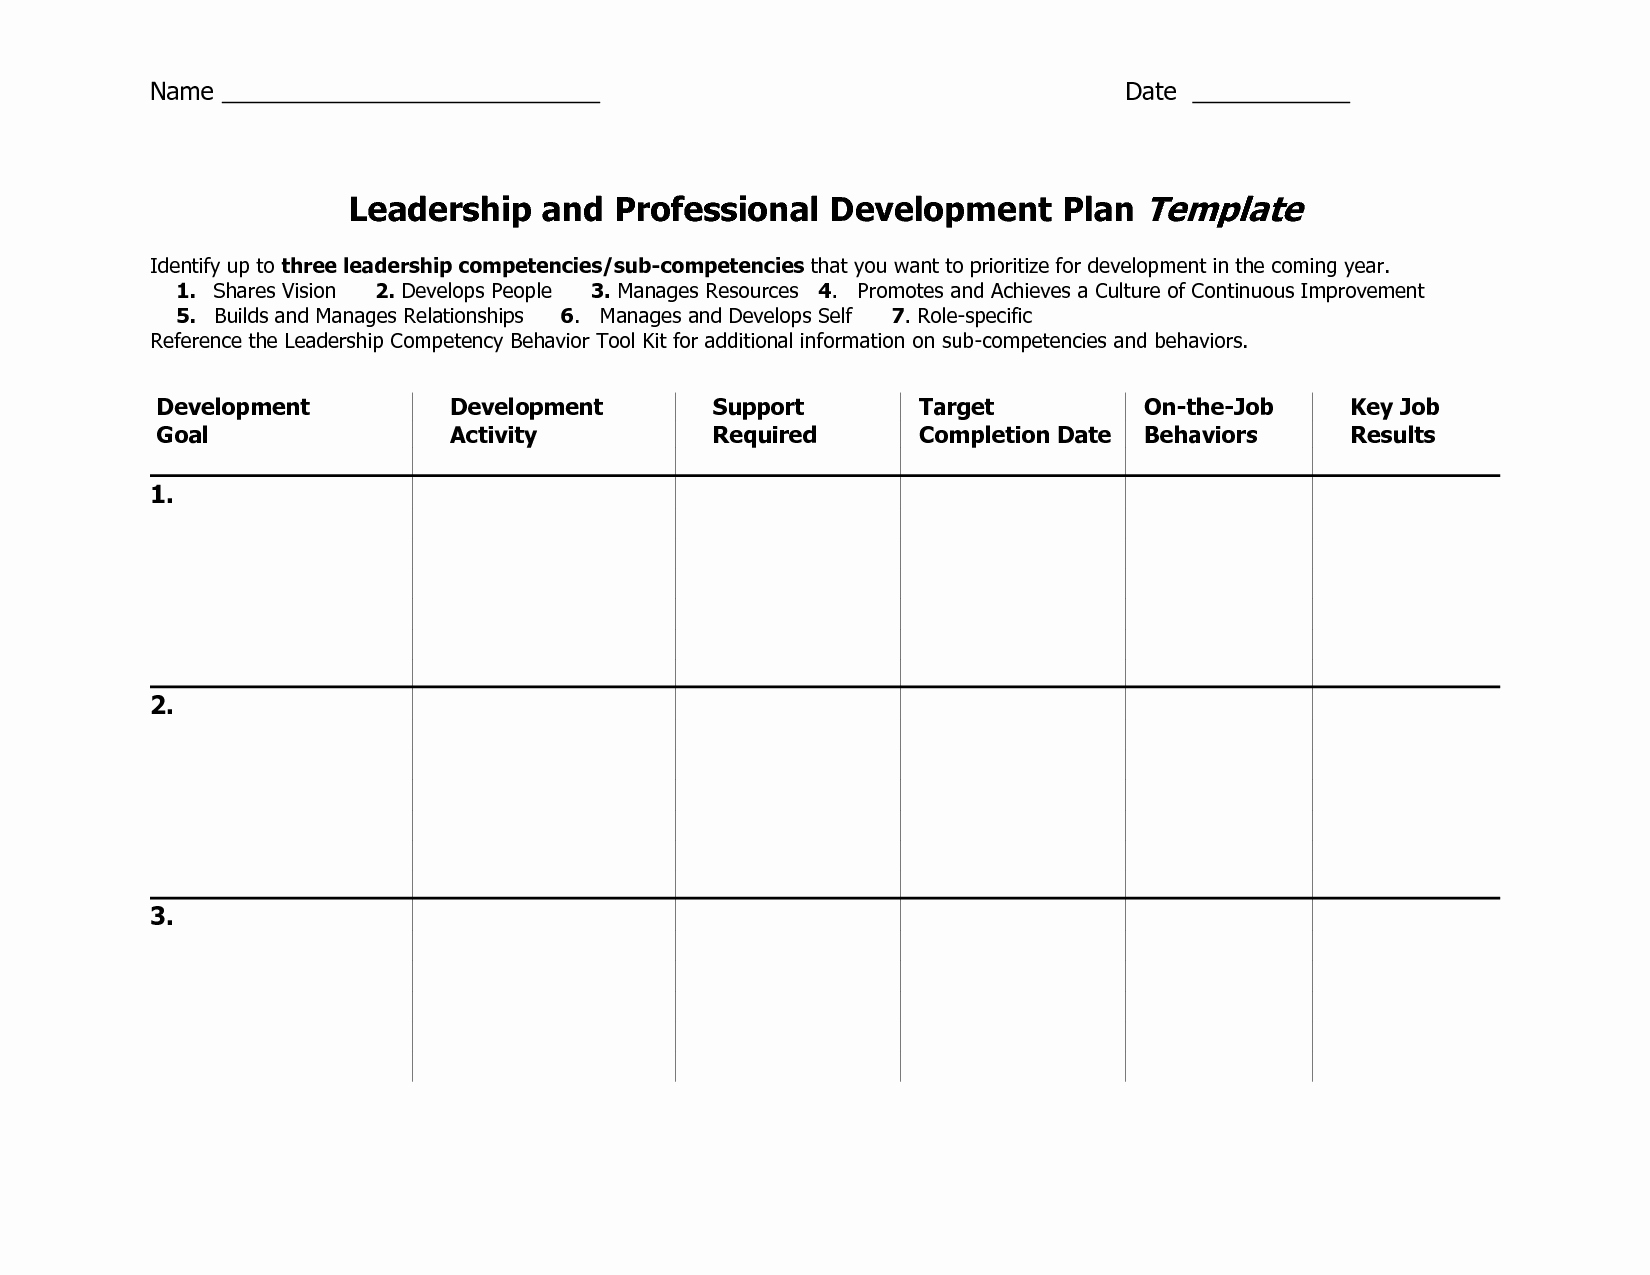 Business Succession Plan Template Fresh Individual Development Plan Template Word Google Search